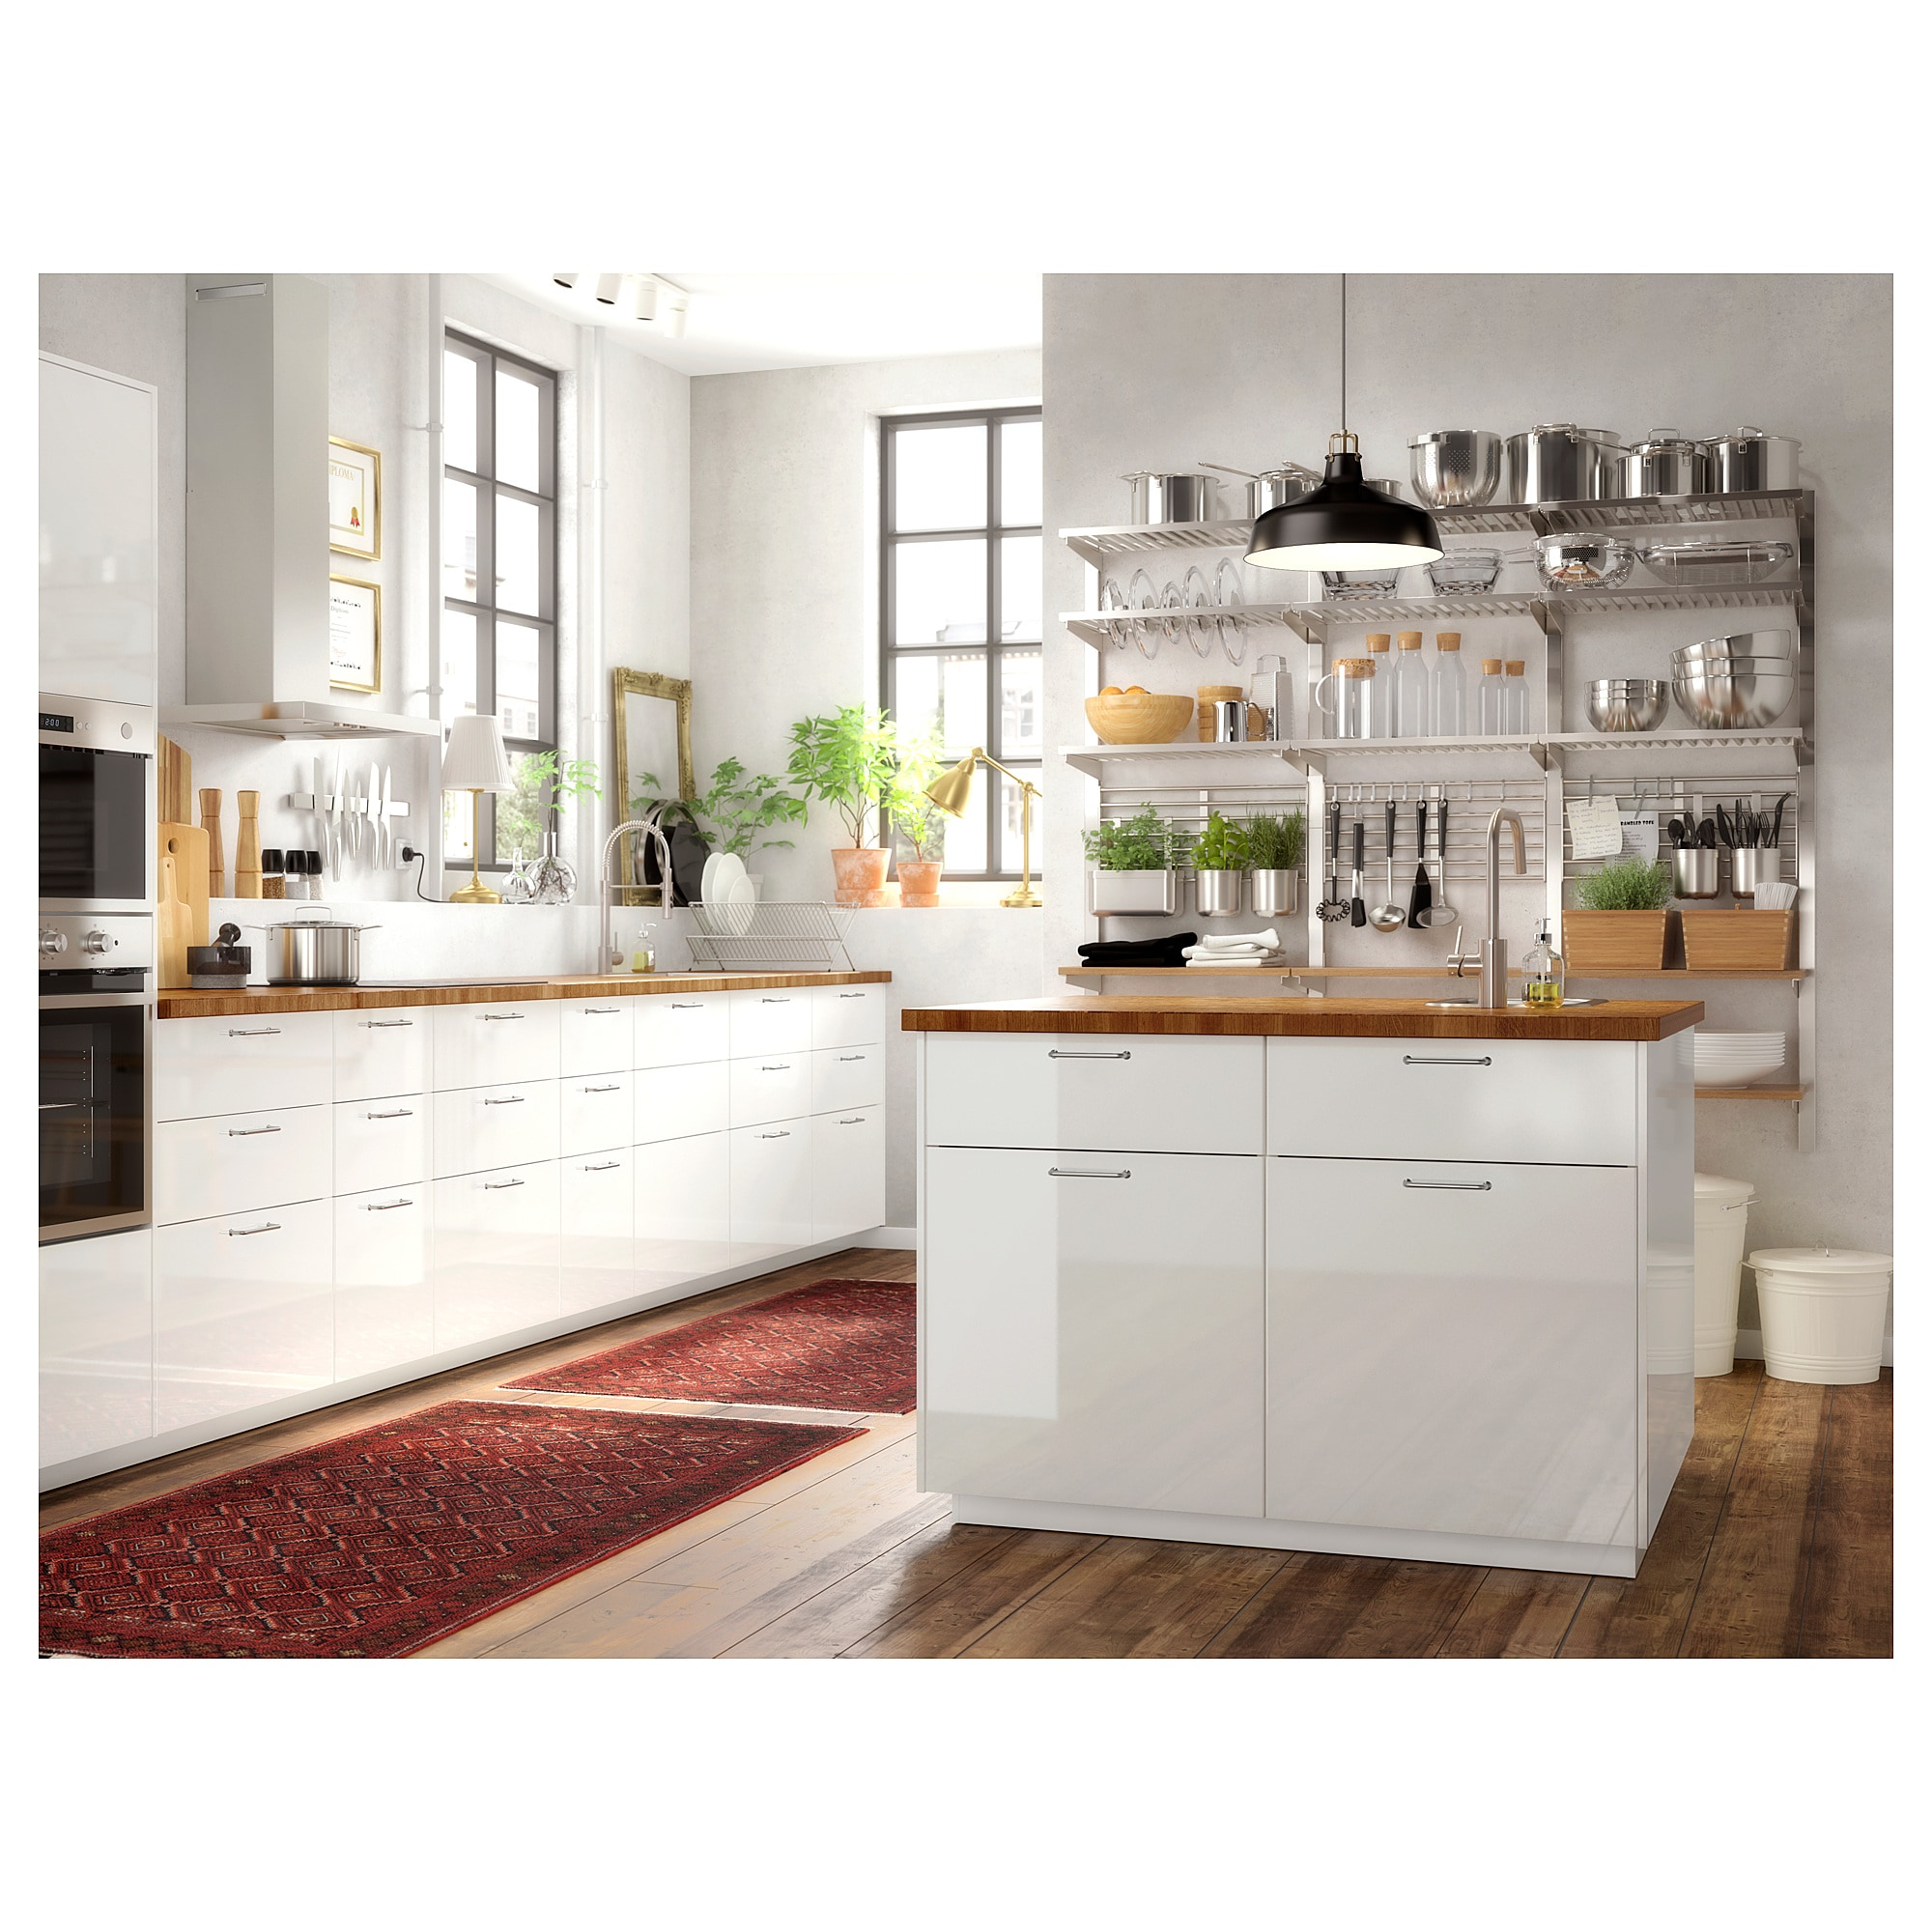 Ikea Kitchen Cabinet Refacing: KUNGSFORS Suspension Rail With Shelf/wll Grid